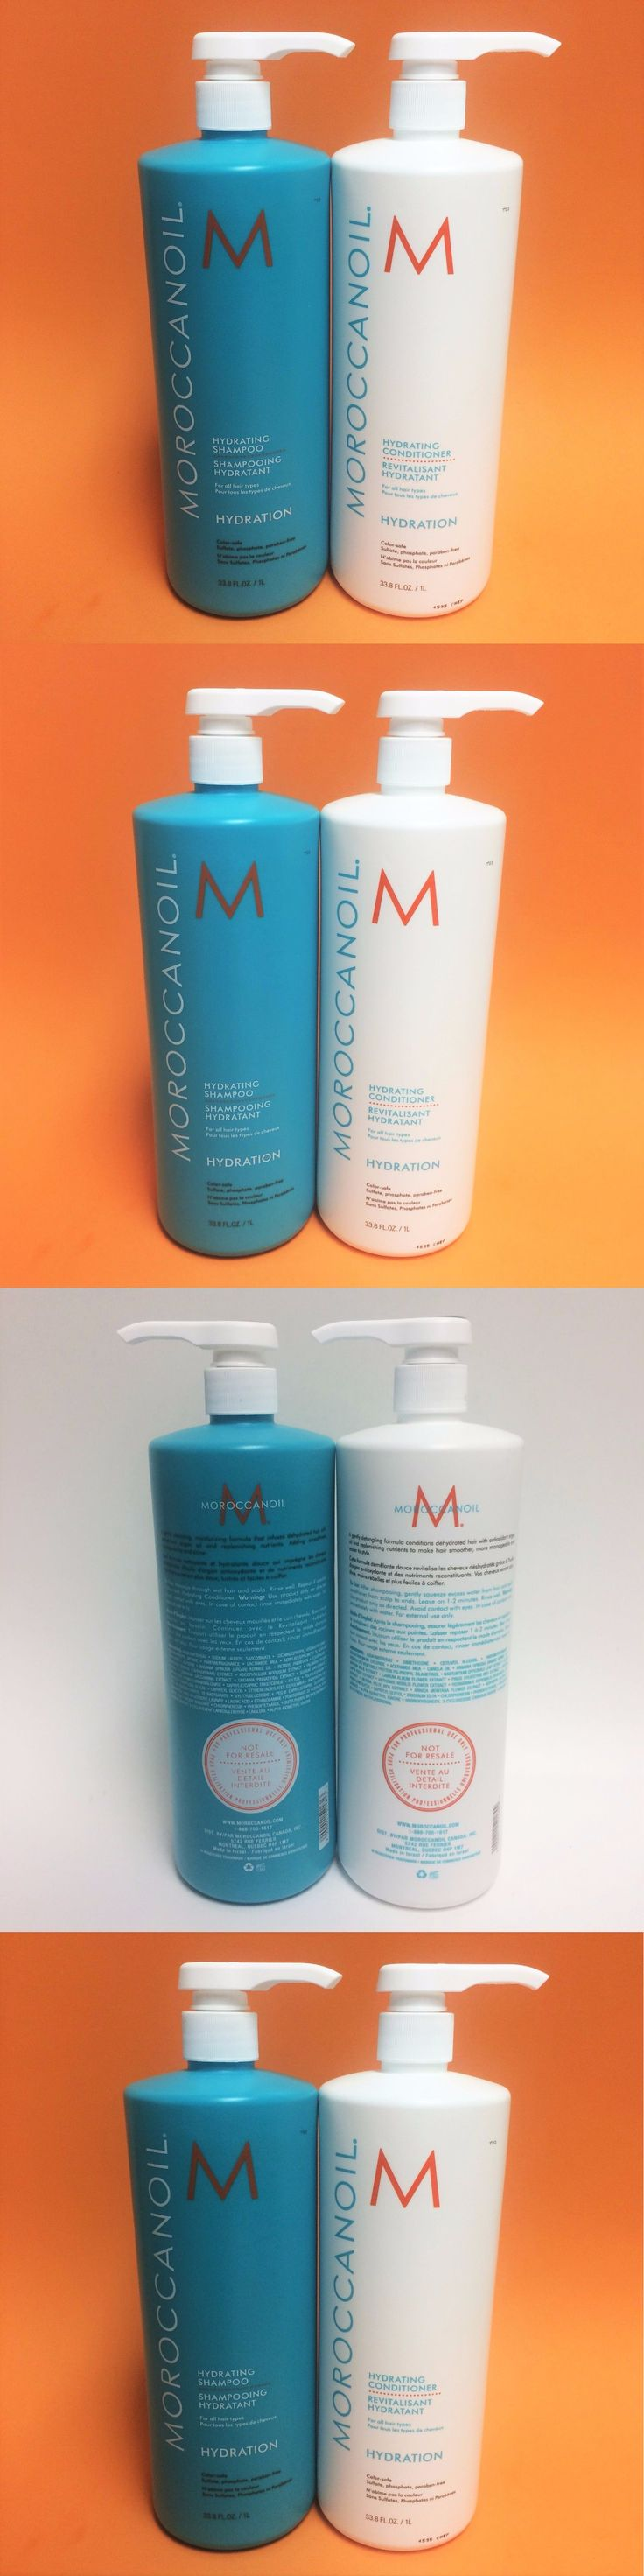 Shampoos and Conditioners: *With Free Gift* Moroccan Oil Hydrating Shampoo And Conditioner 33.8 Oz 1 L!!! -> BUY IT NOW ONLY: $88.9 on eBay!